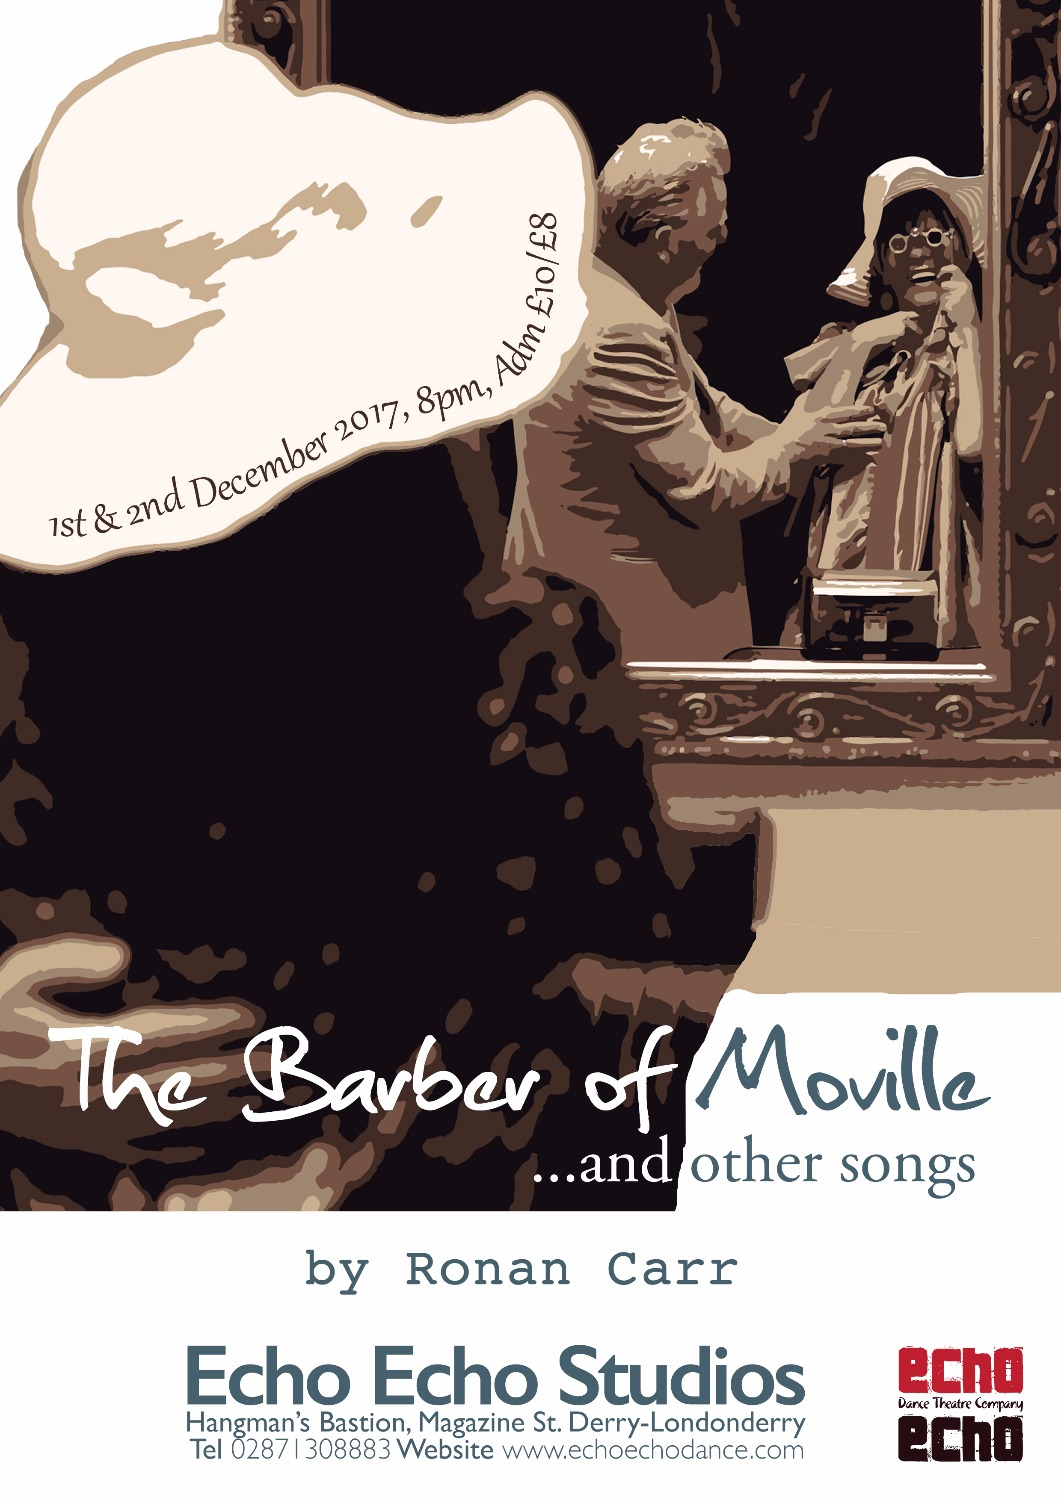 Barber of Moville image